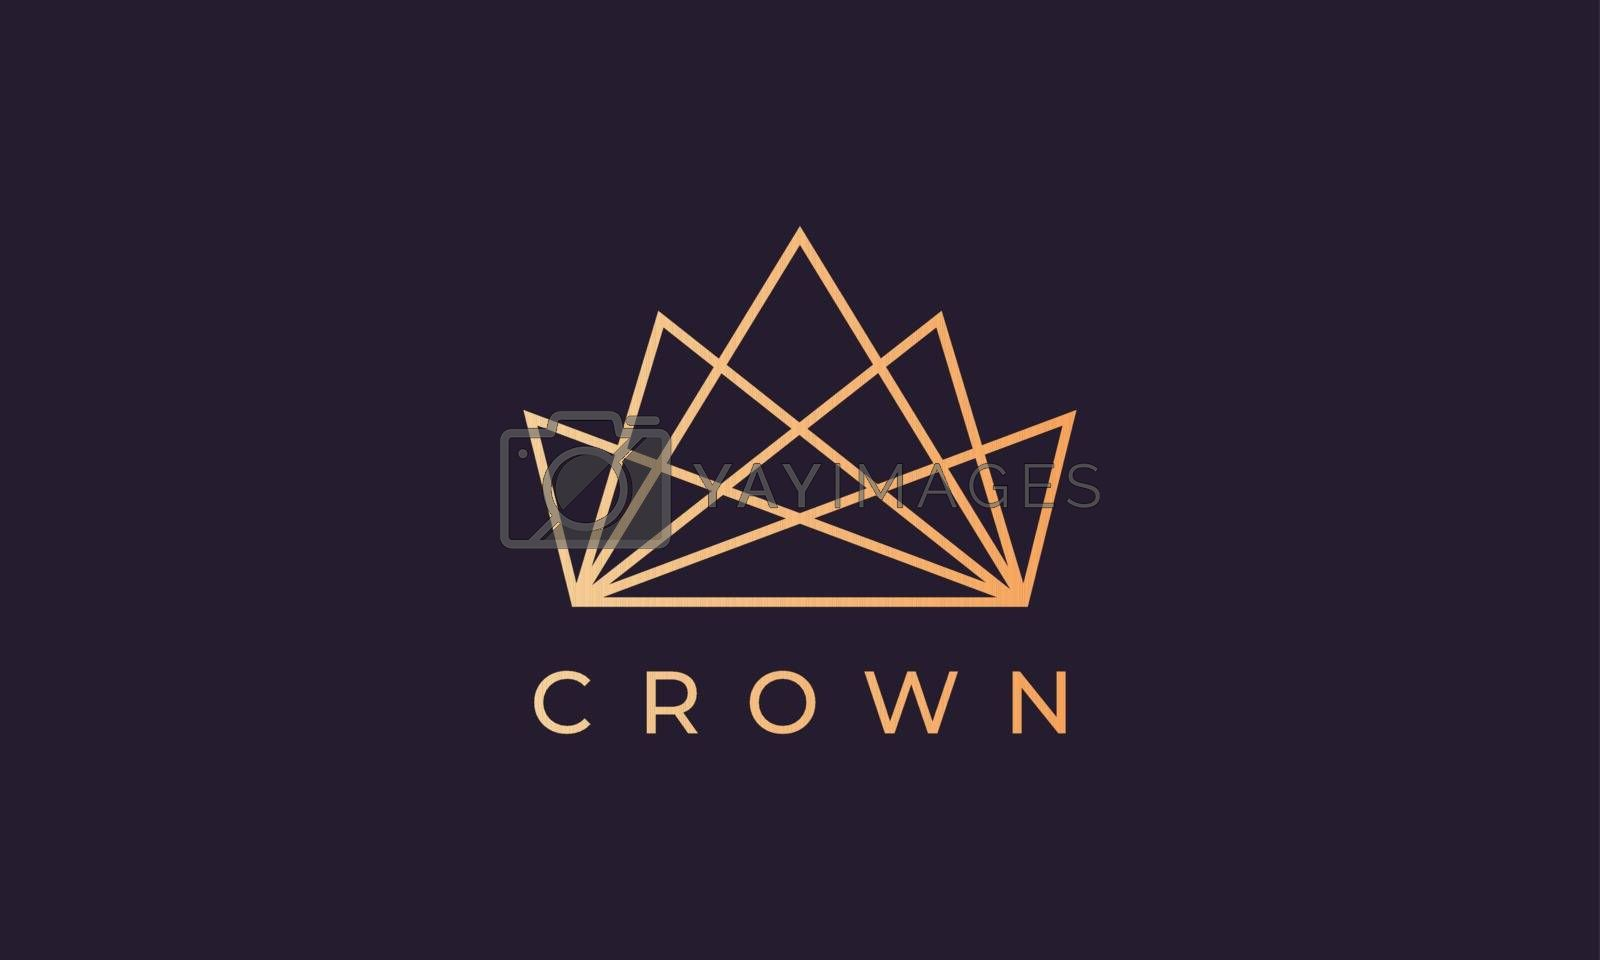 luxury gold kingdom crown logo with simple line art style